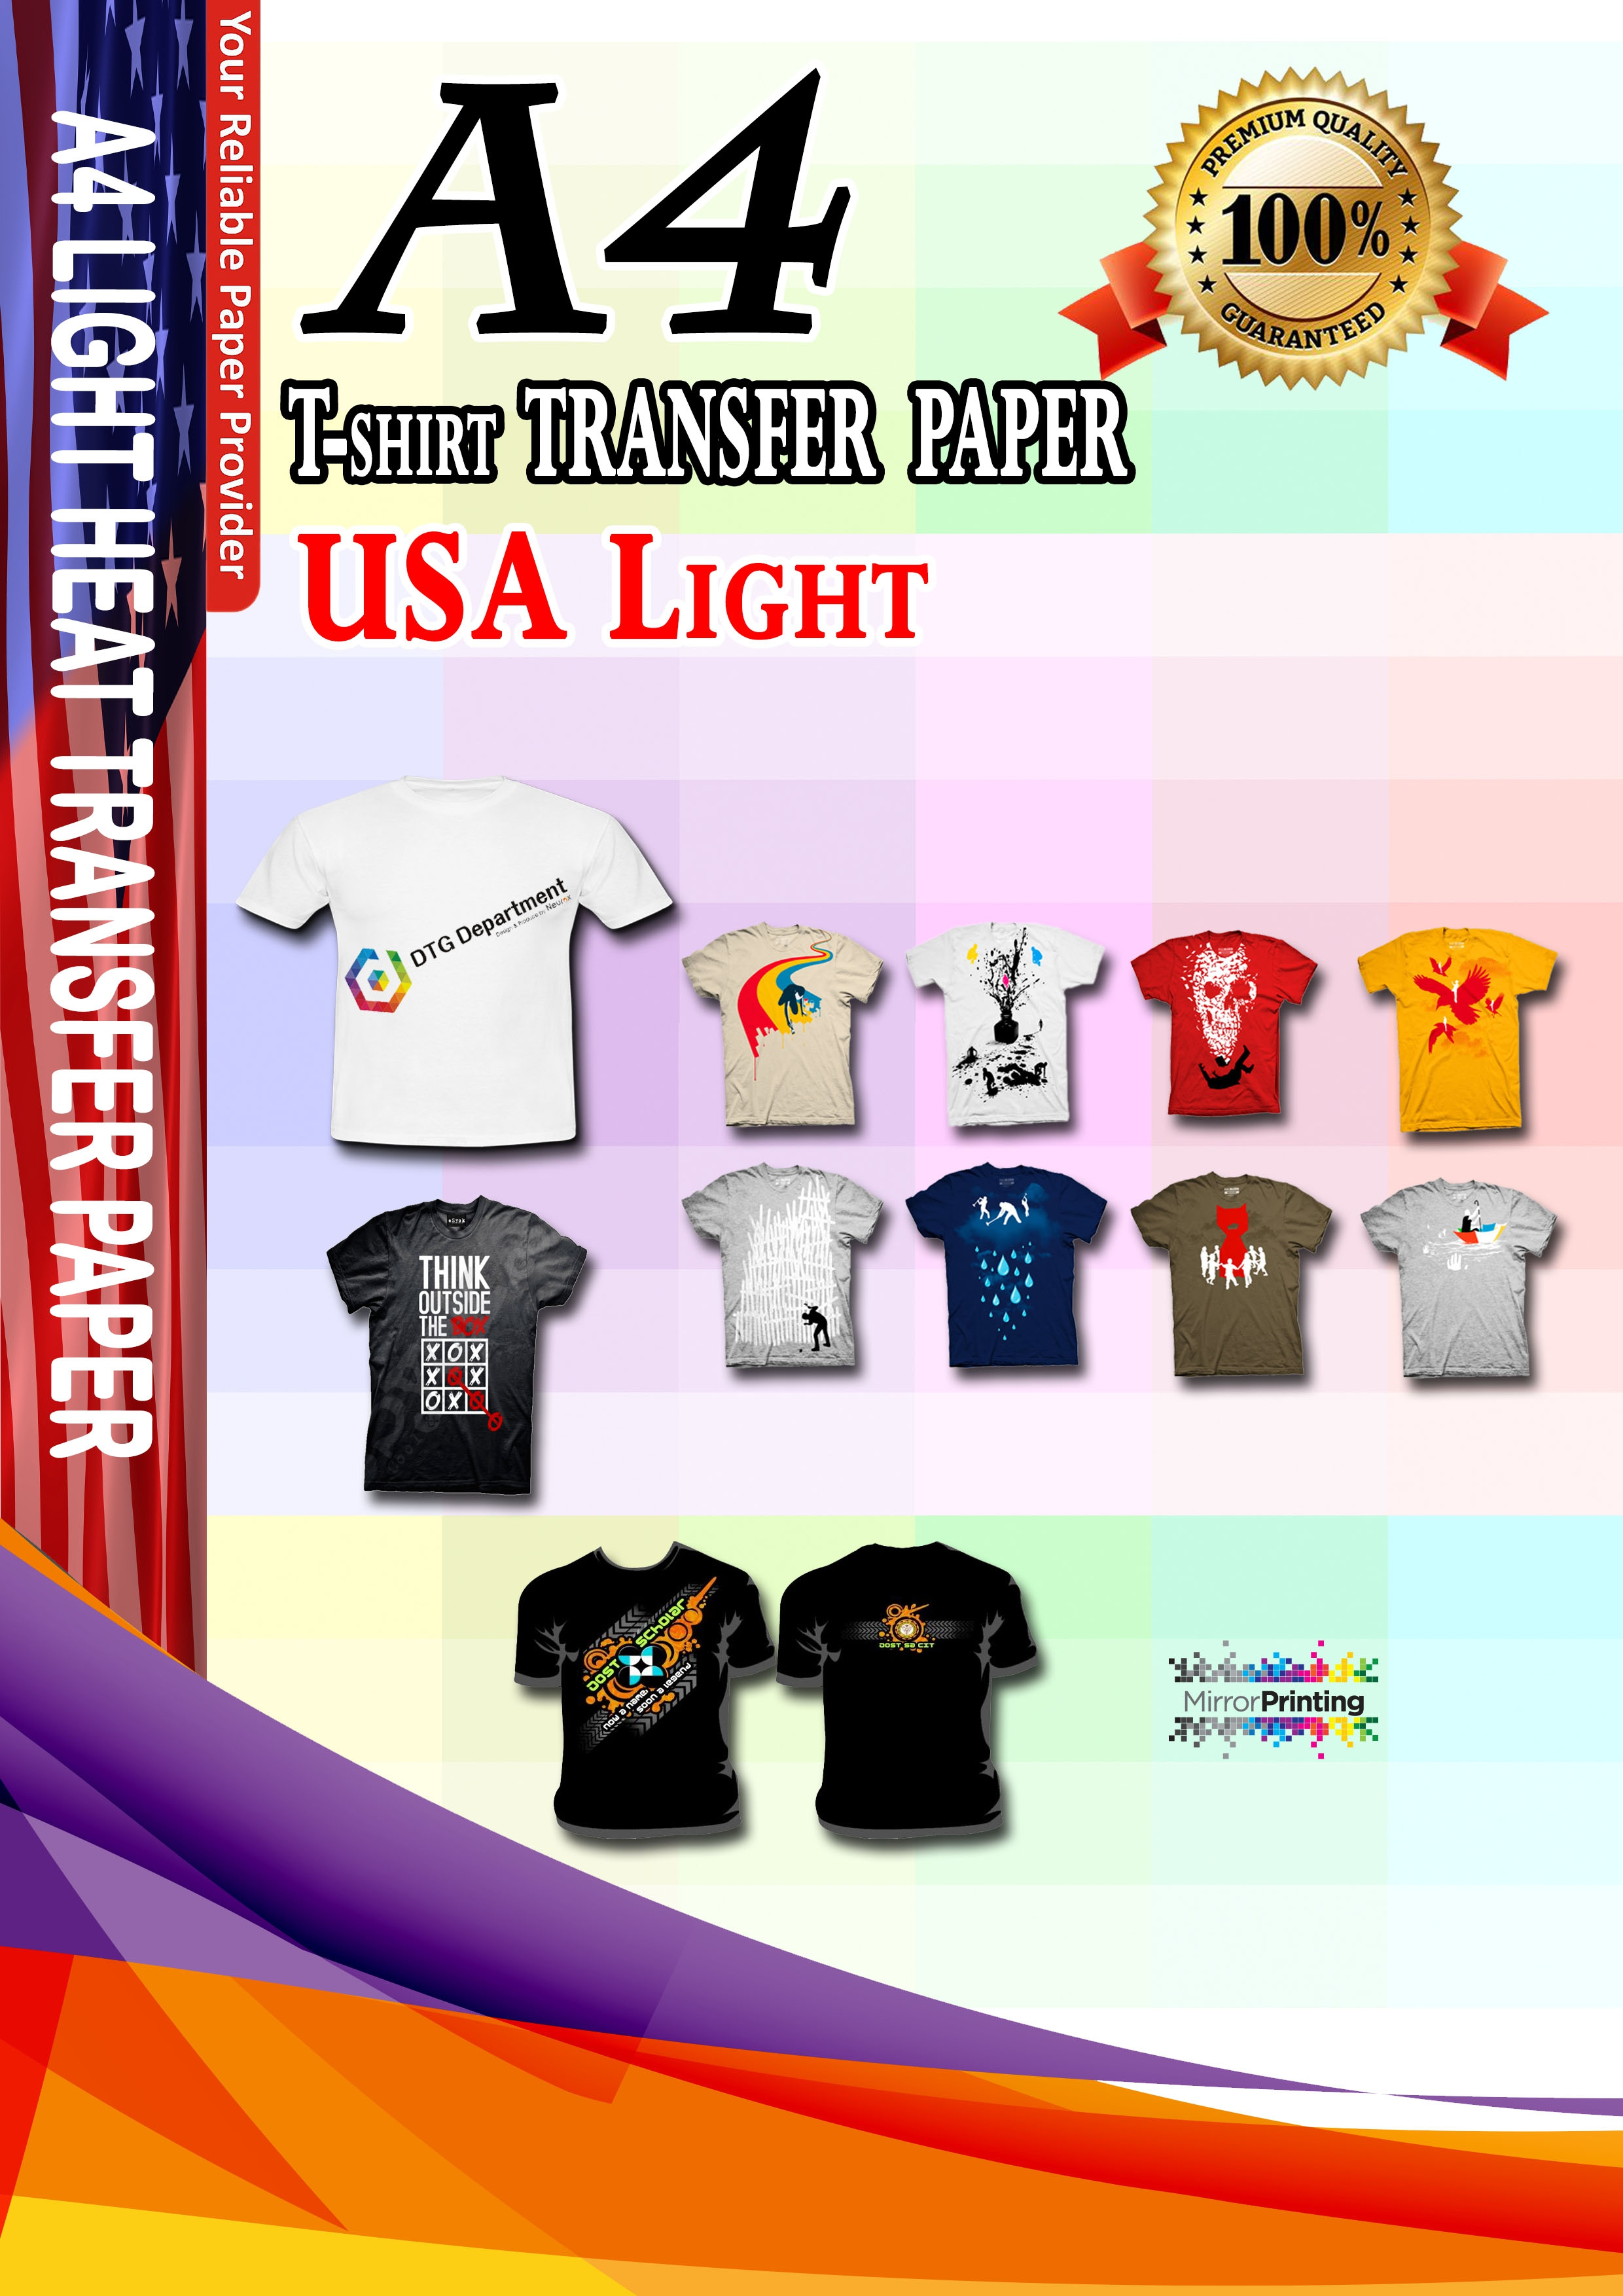 Heat Transfer Paper For T Shirt Printing - DREAMWORKS